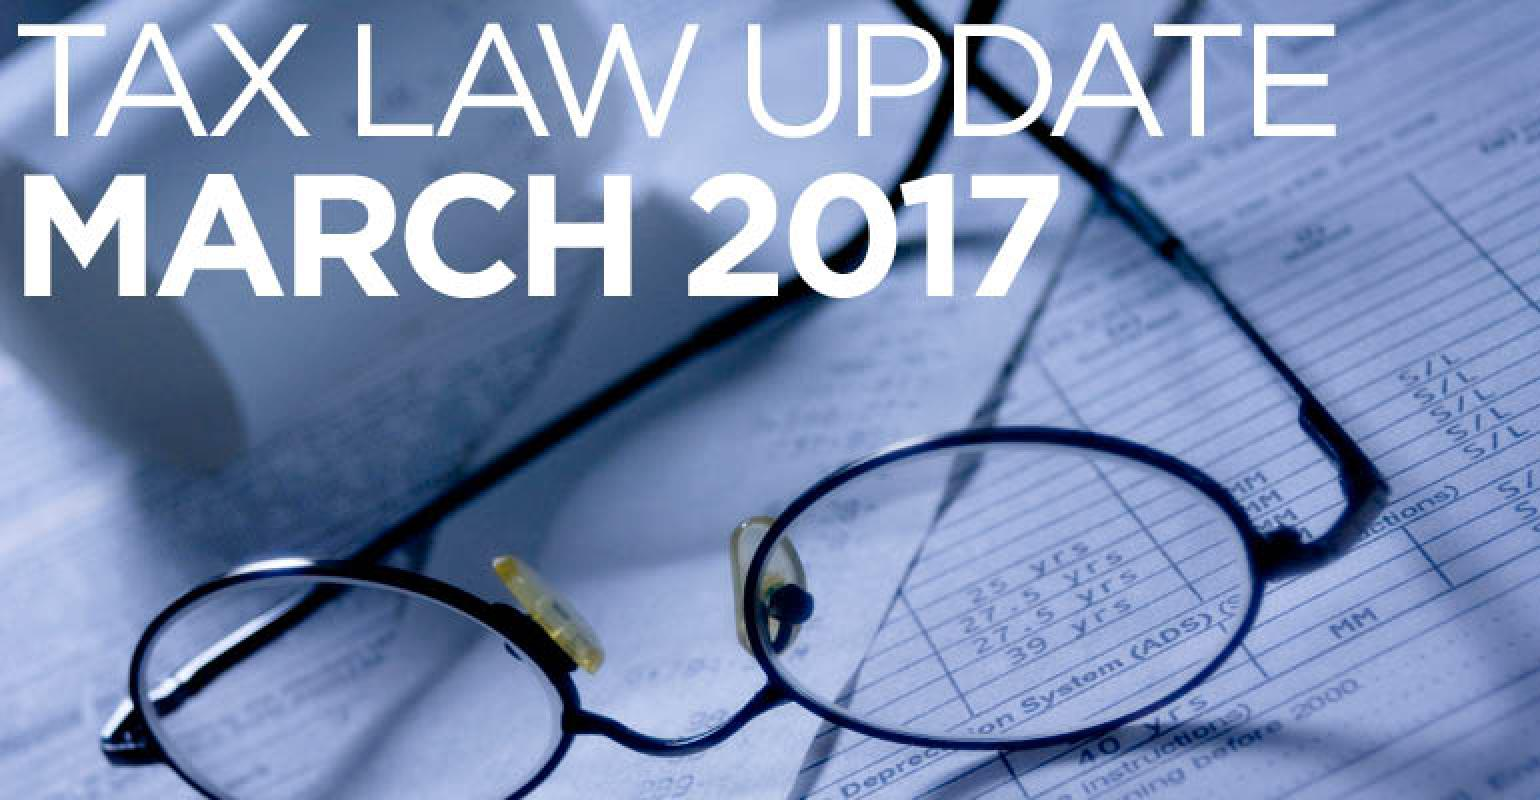 Tax Law Update: March 2017 | Wealth Management